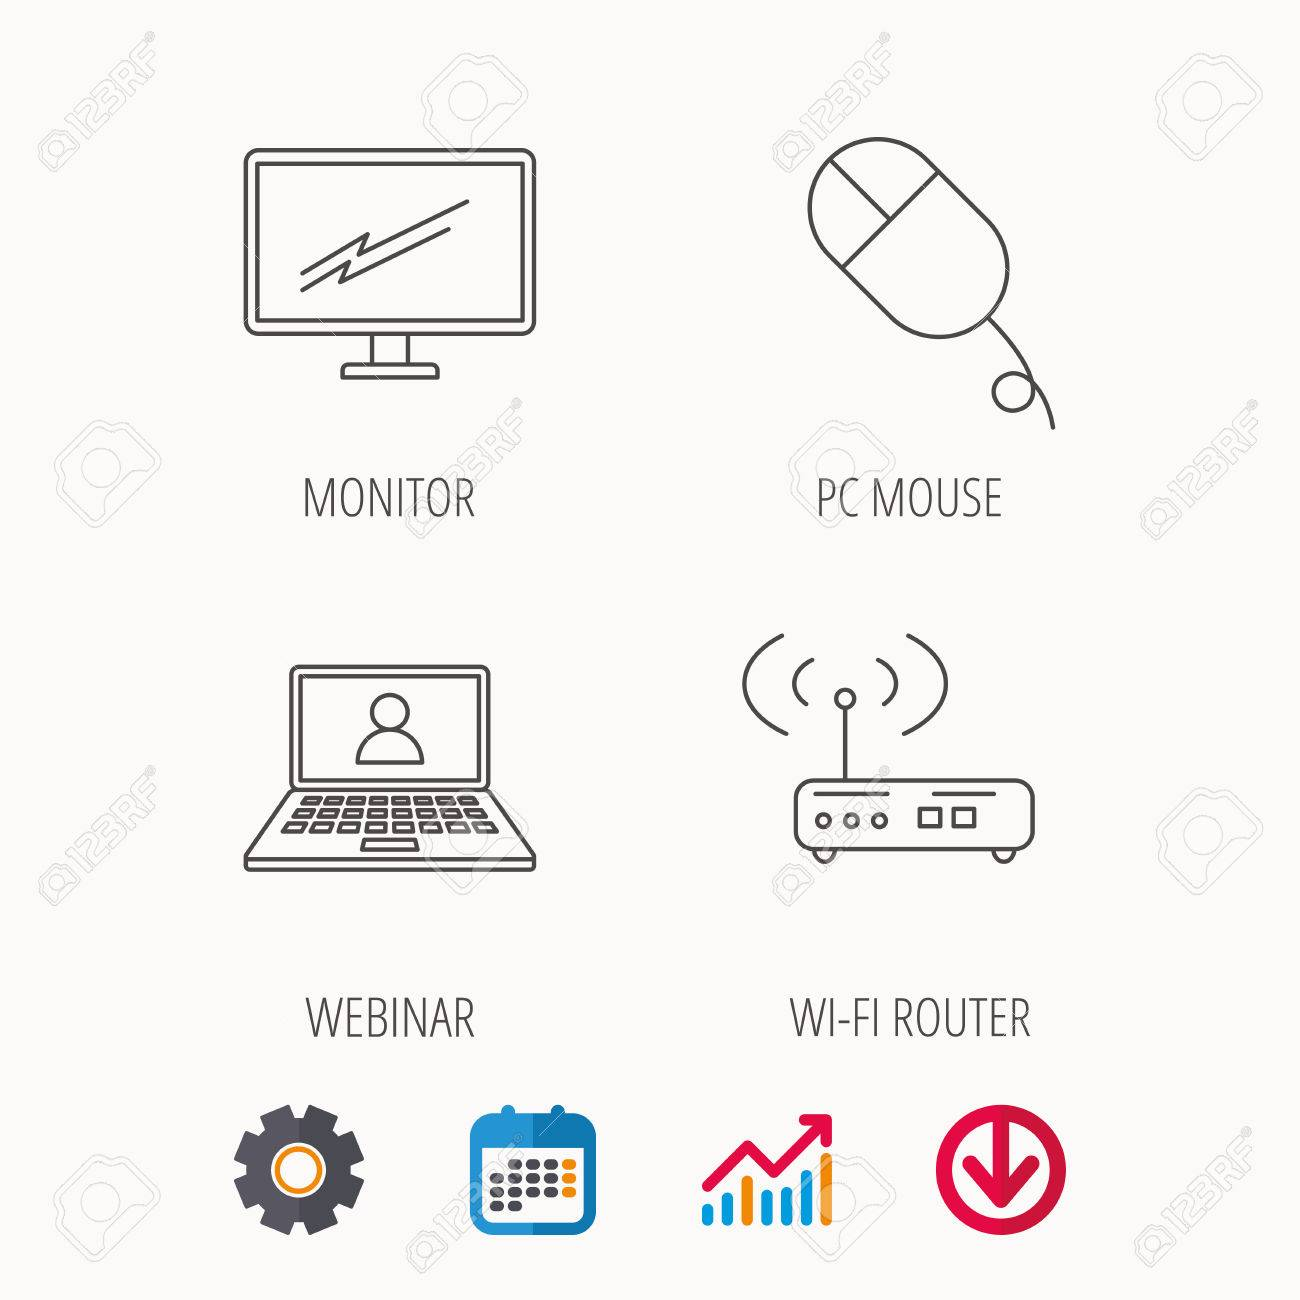 Wifi router, pc mouse and monitor tv icons  Webinar linear sign